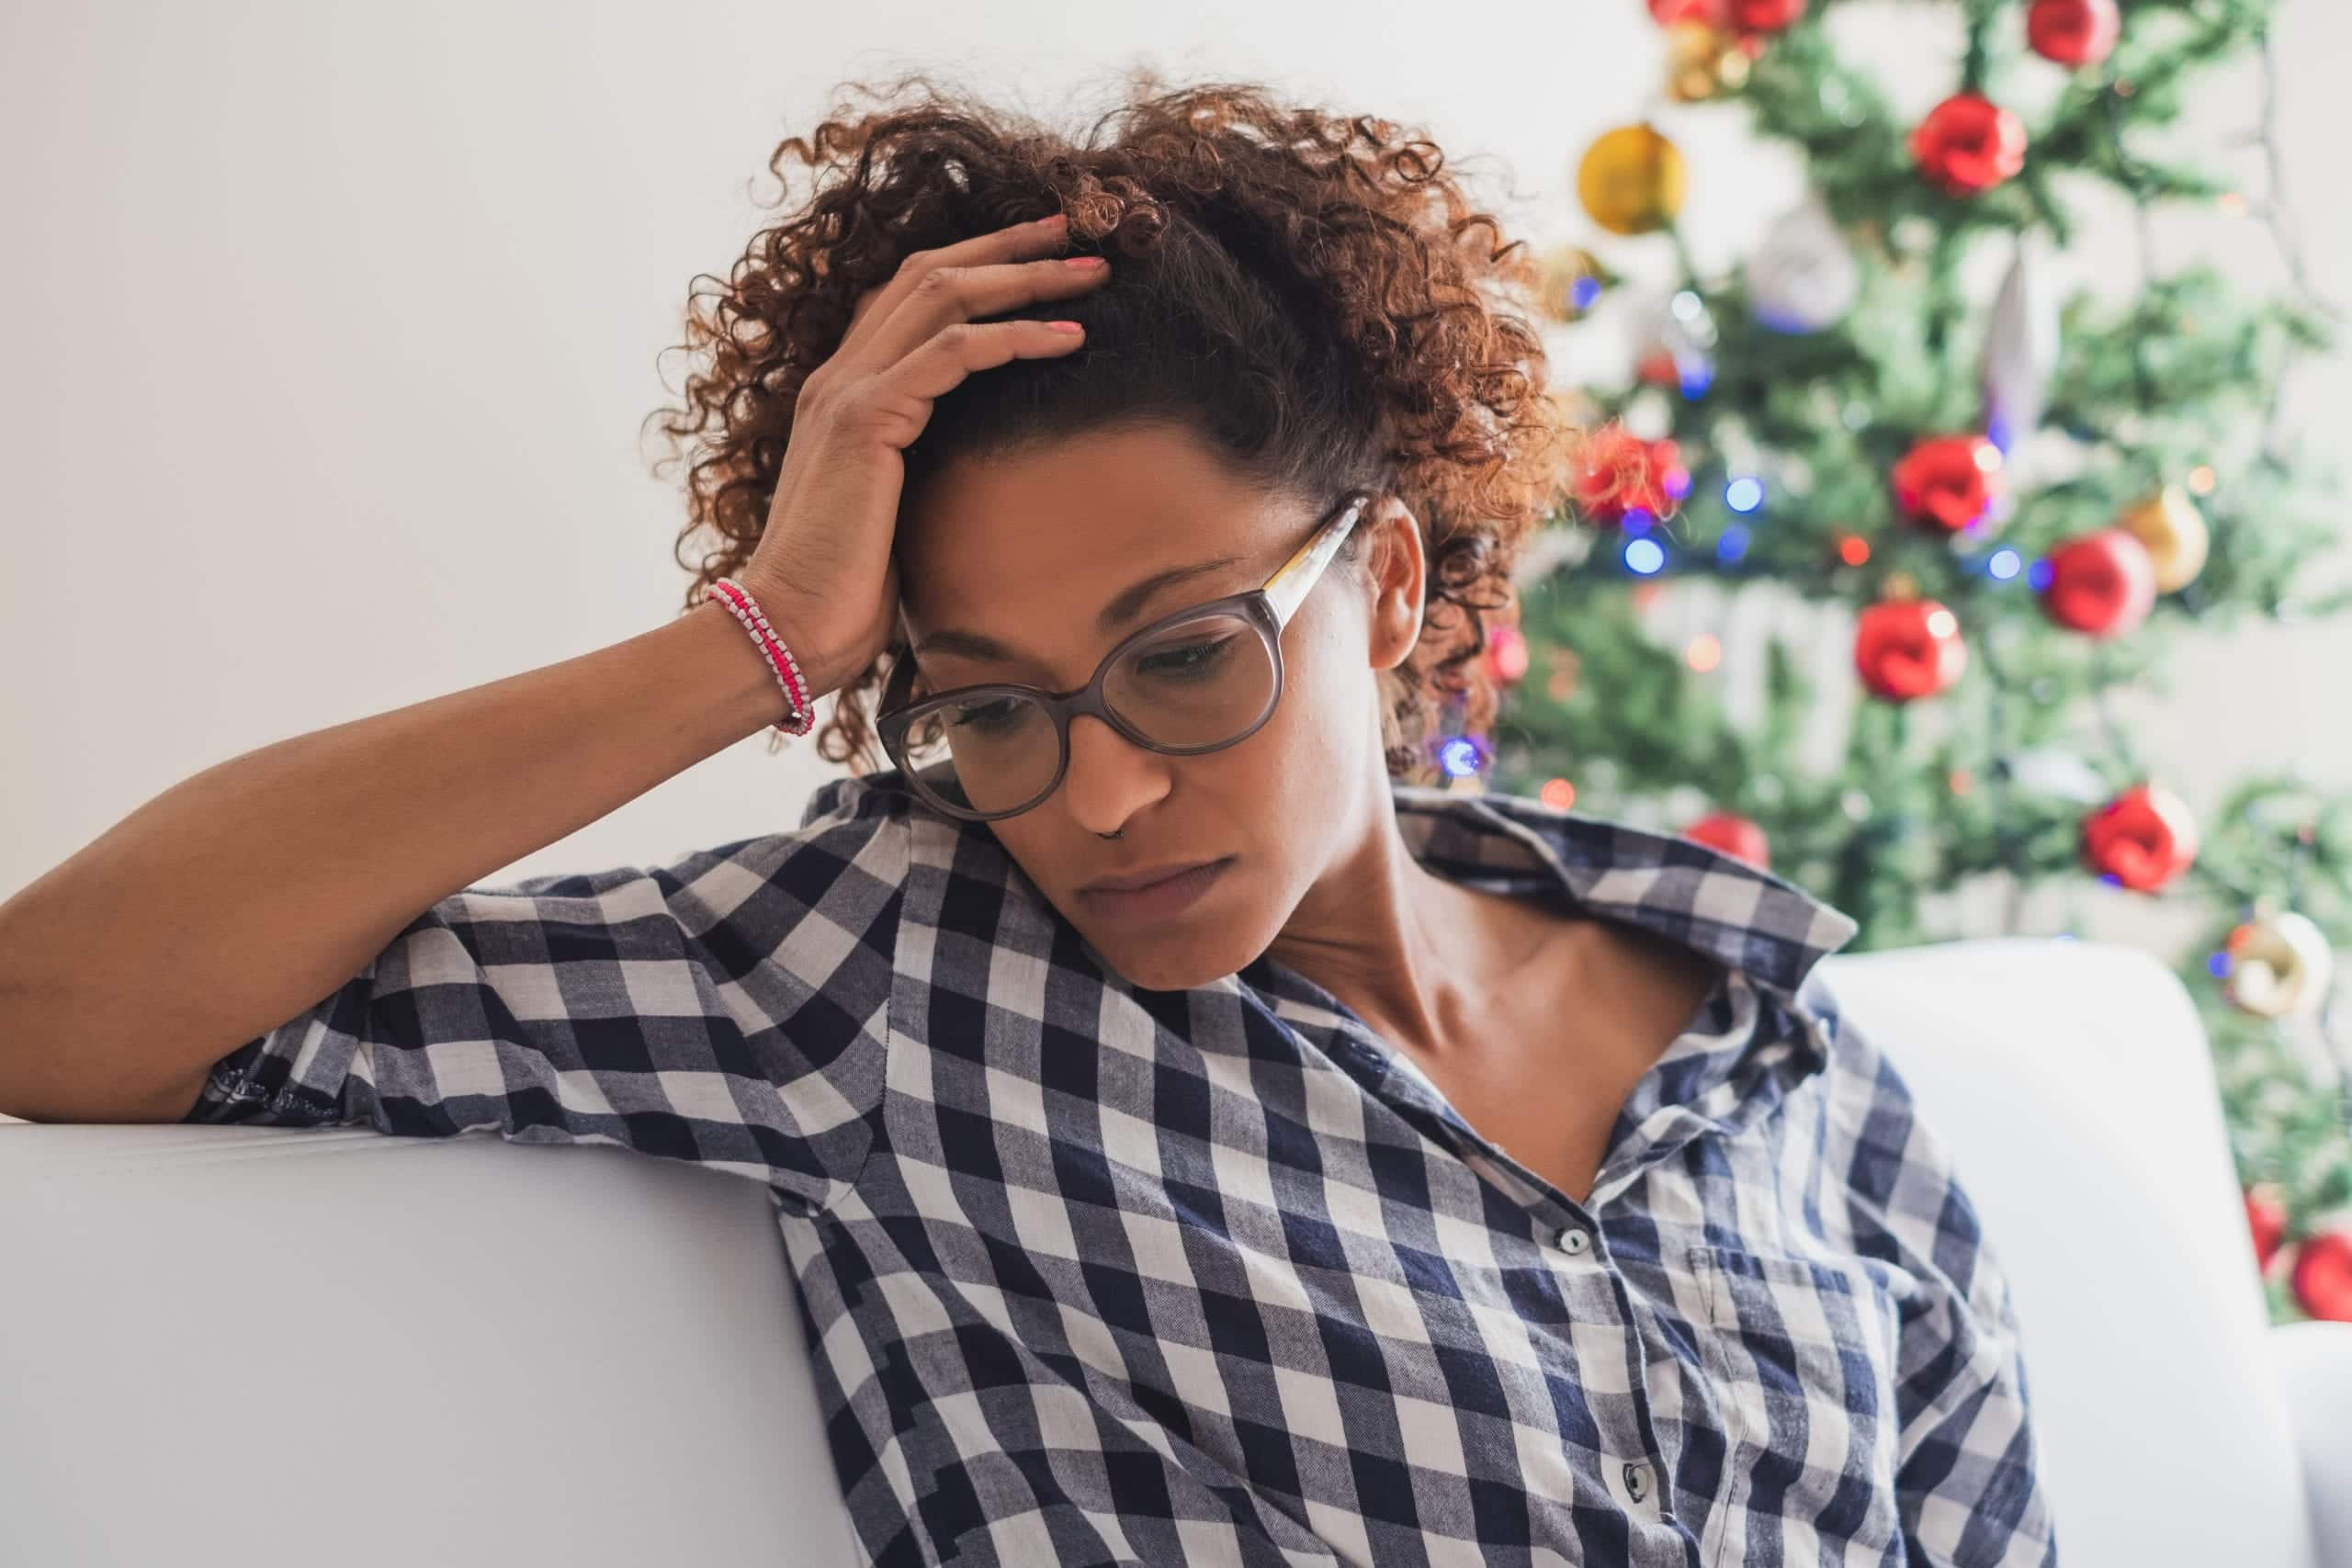 8 Coping Tips to Stay Stress-Free